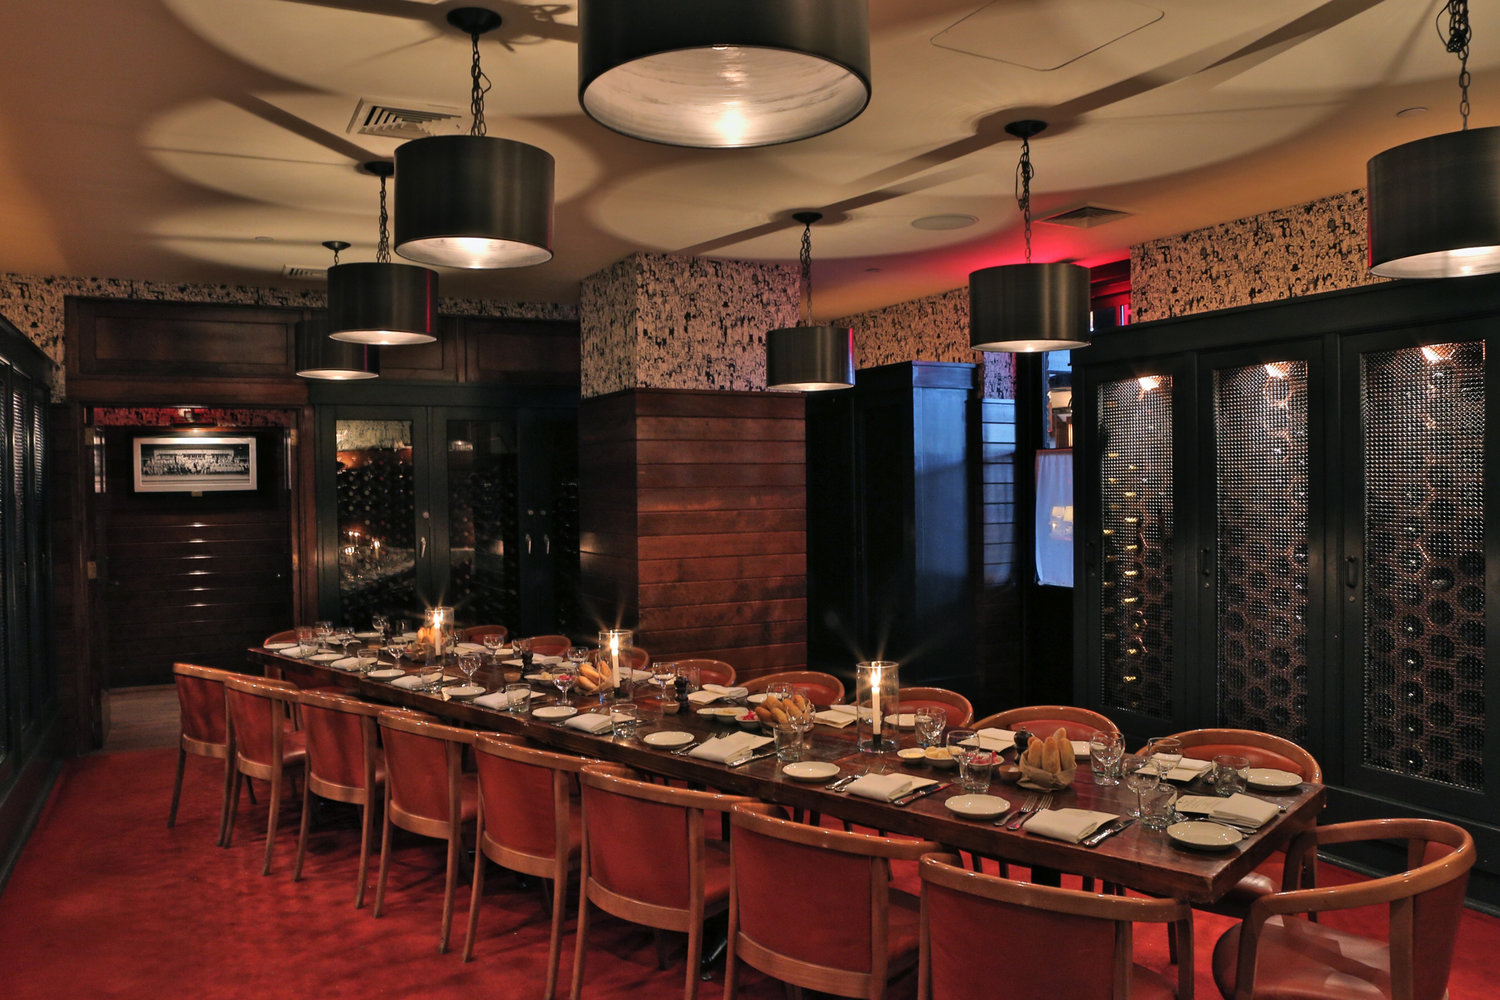 The Wine Room event space at The Standard Grill in New York City, NYC, NY/NJ Area